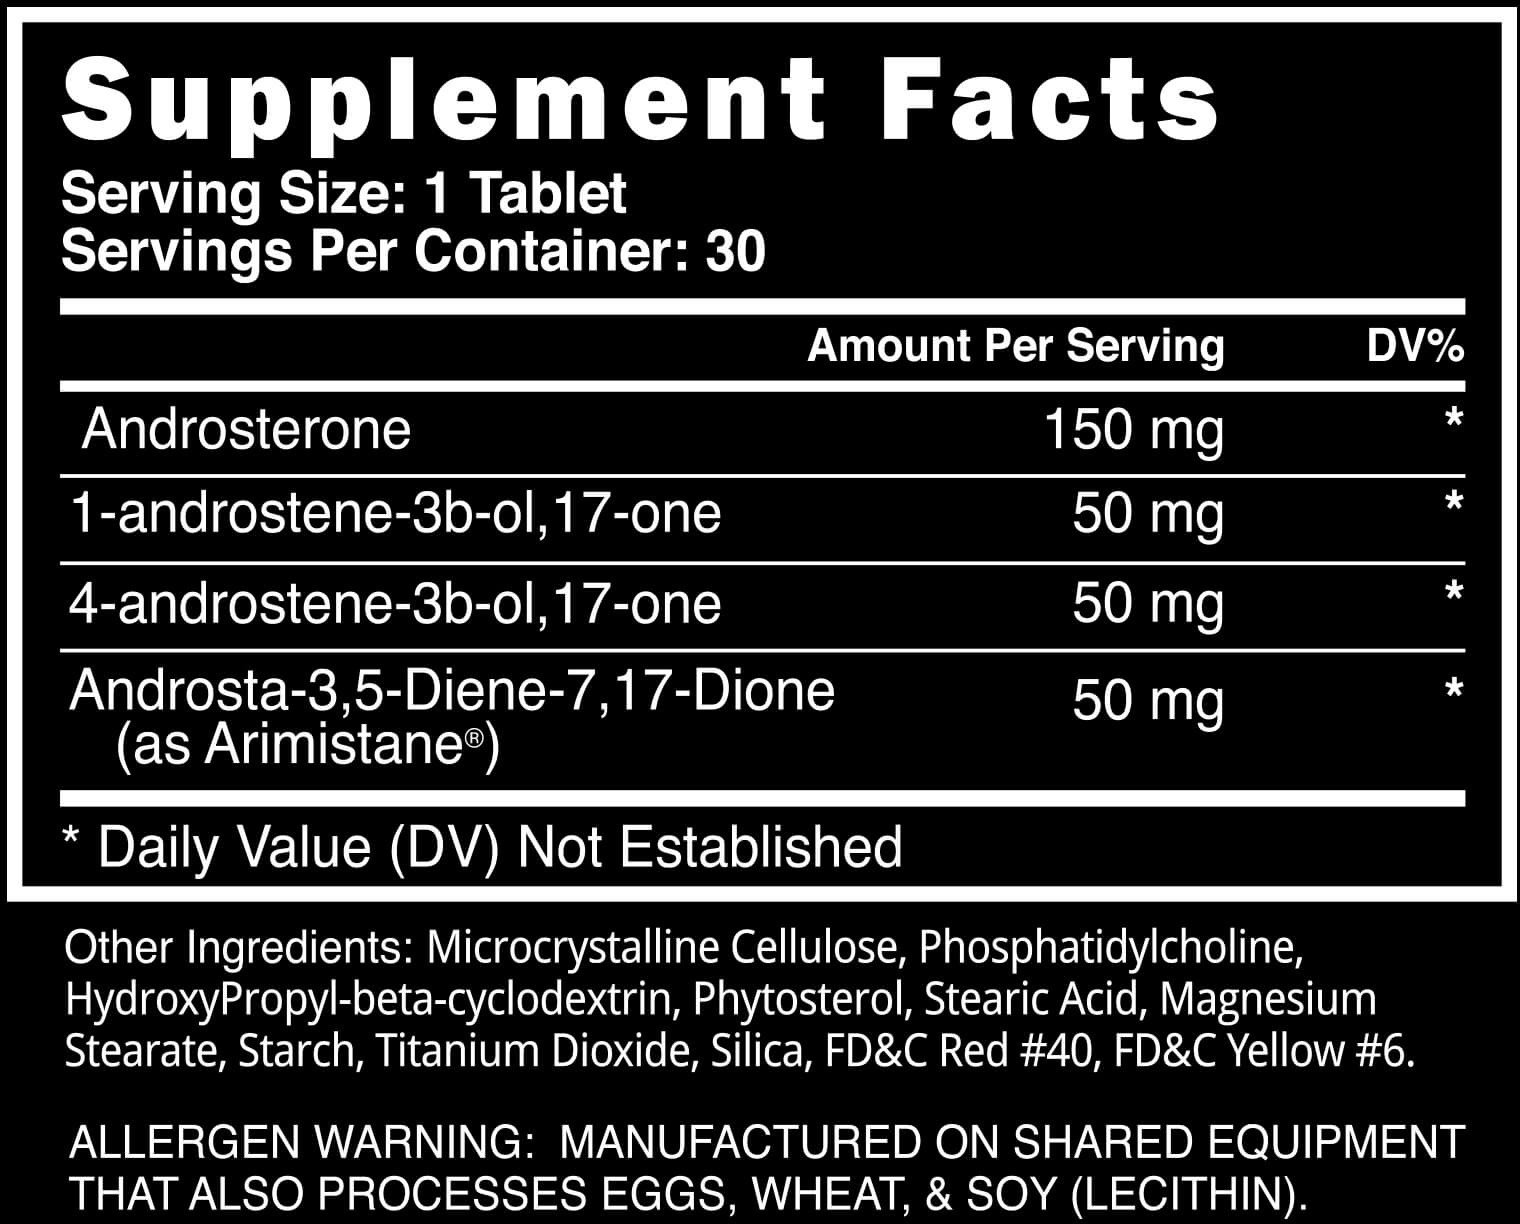 Androsta 3 5 Diene 7 17 Dione Side Effects blackstone labs metha-quad extreme